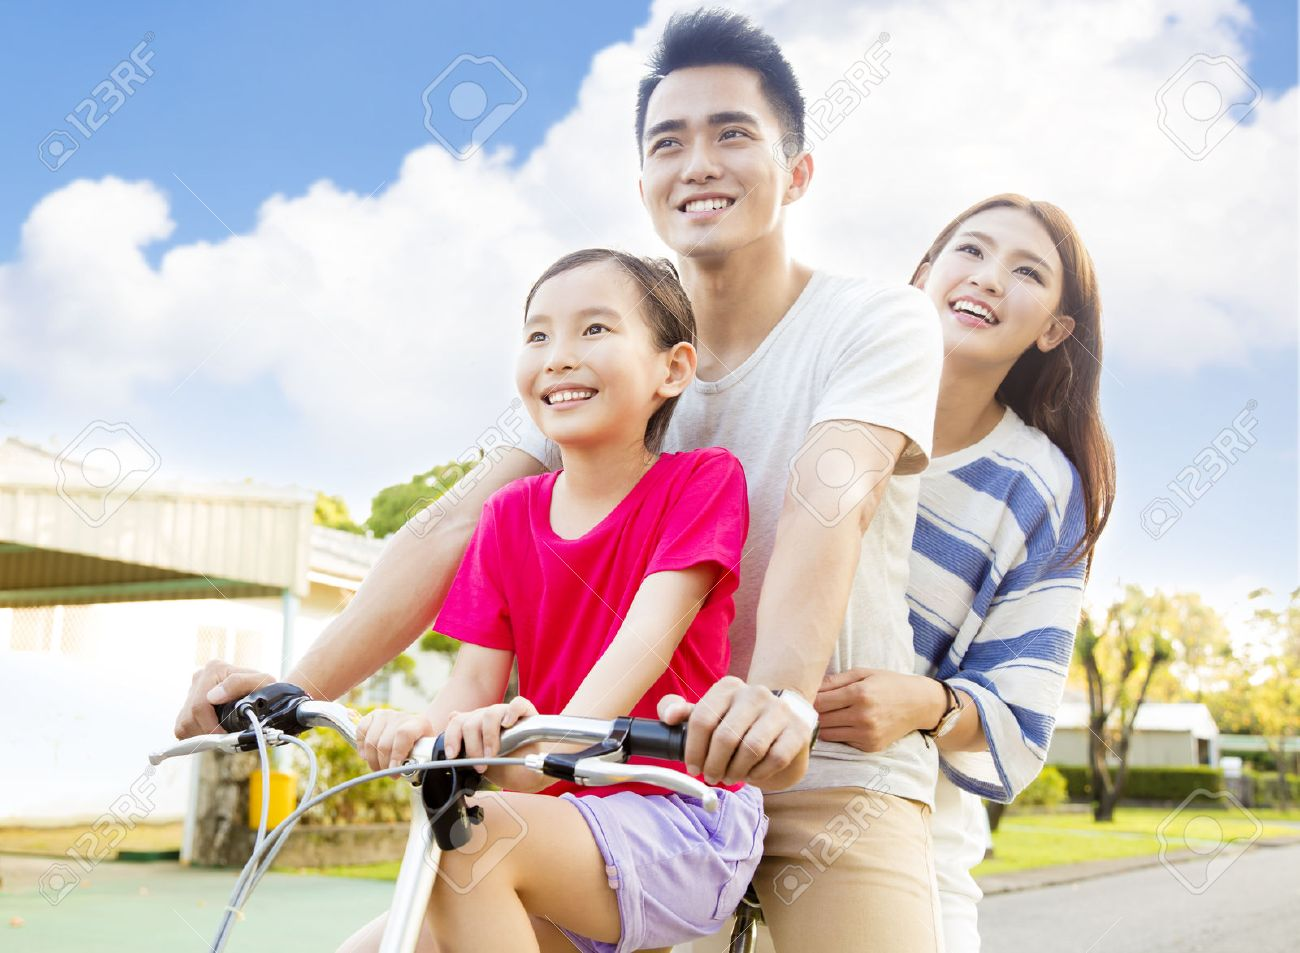 Happy asian family having fun in park with bicycle Stock Photo - 56086044